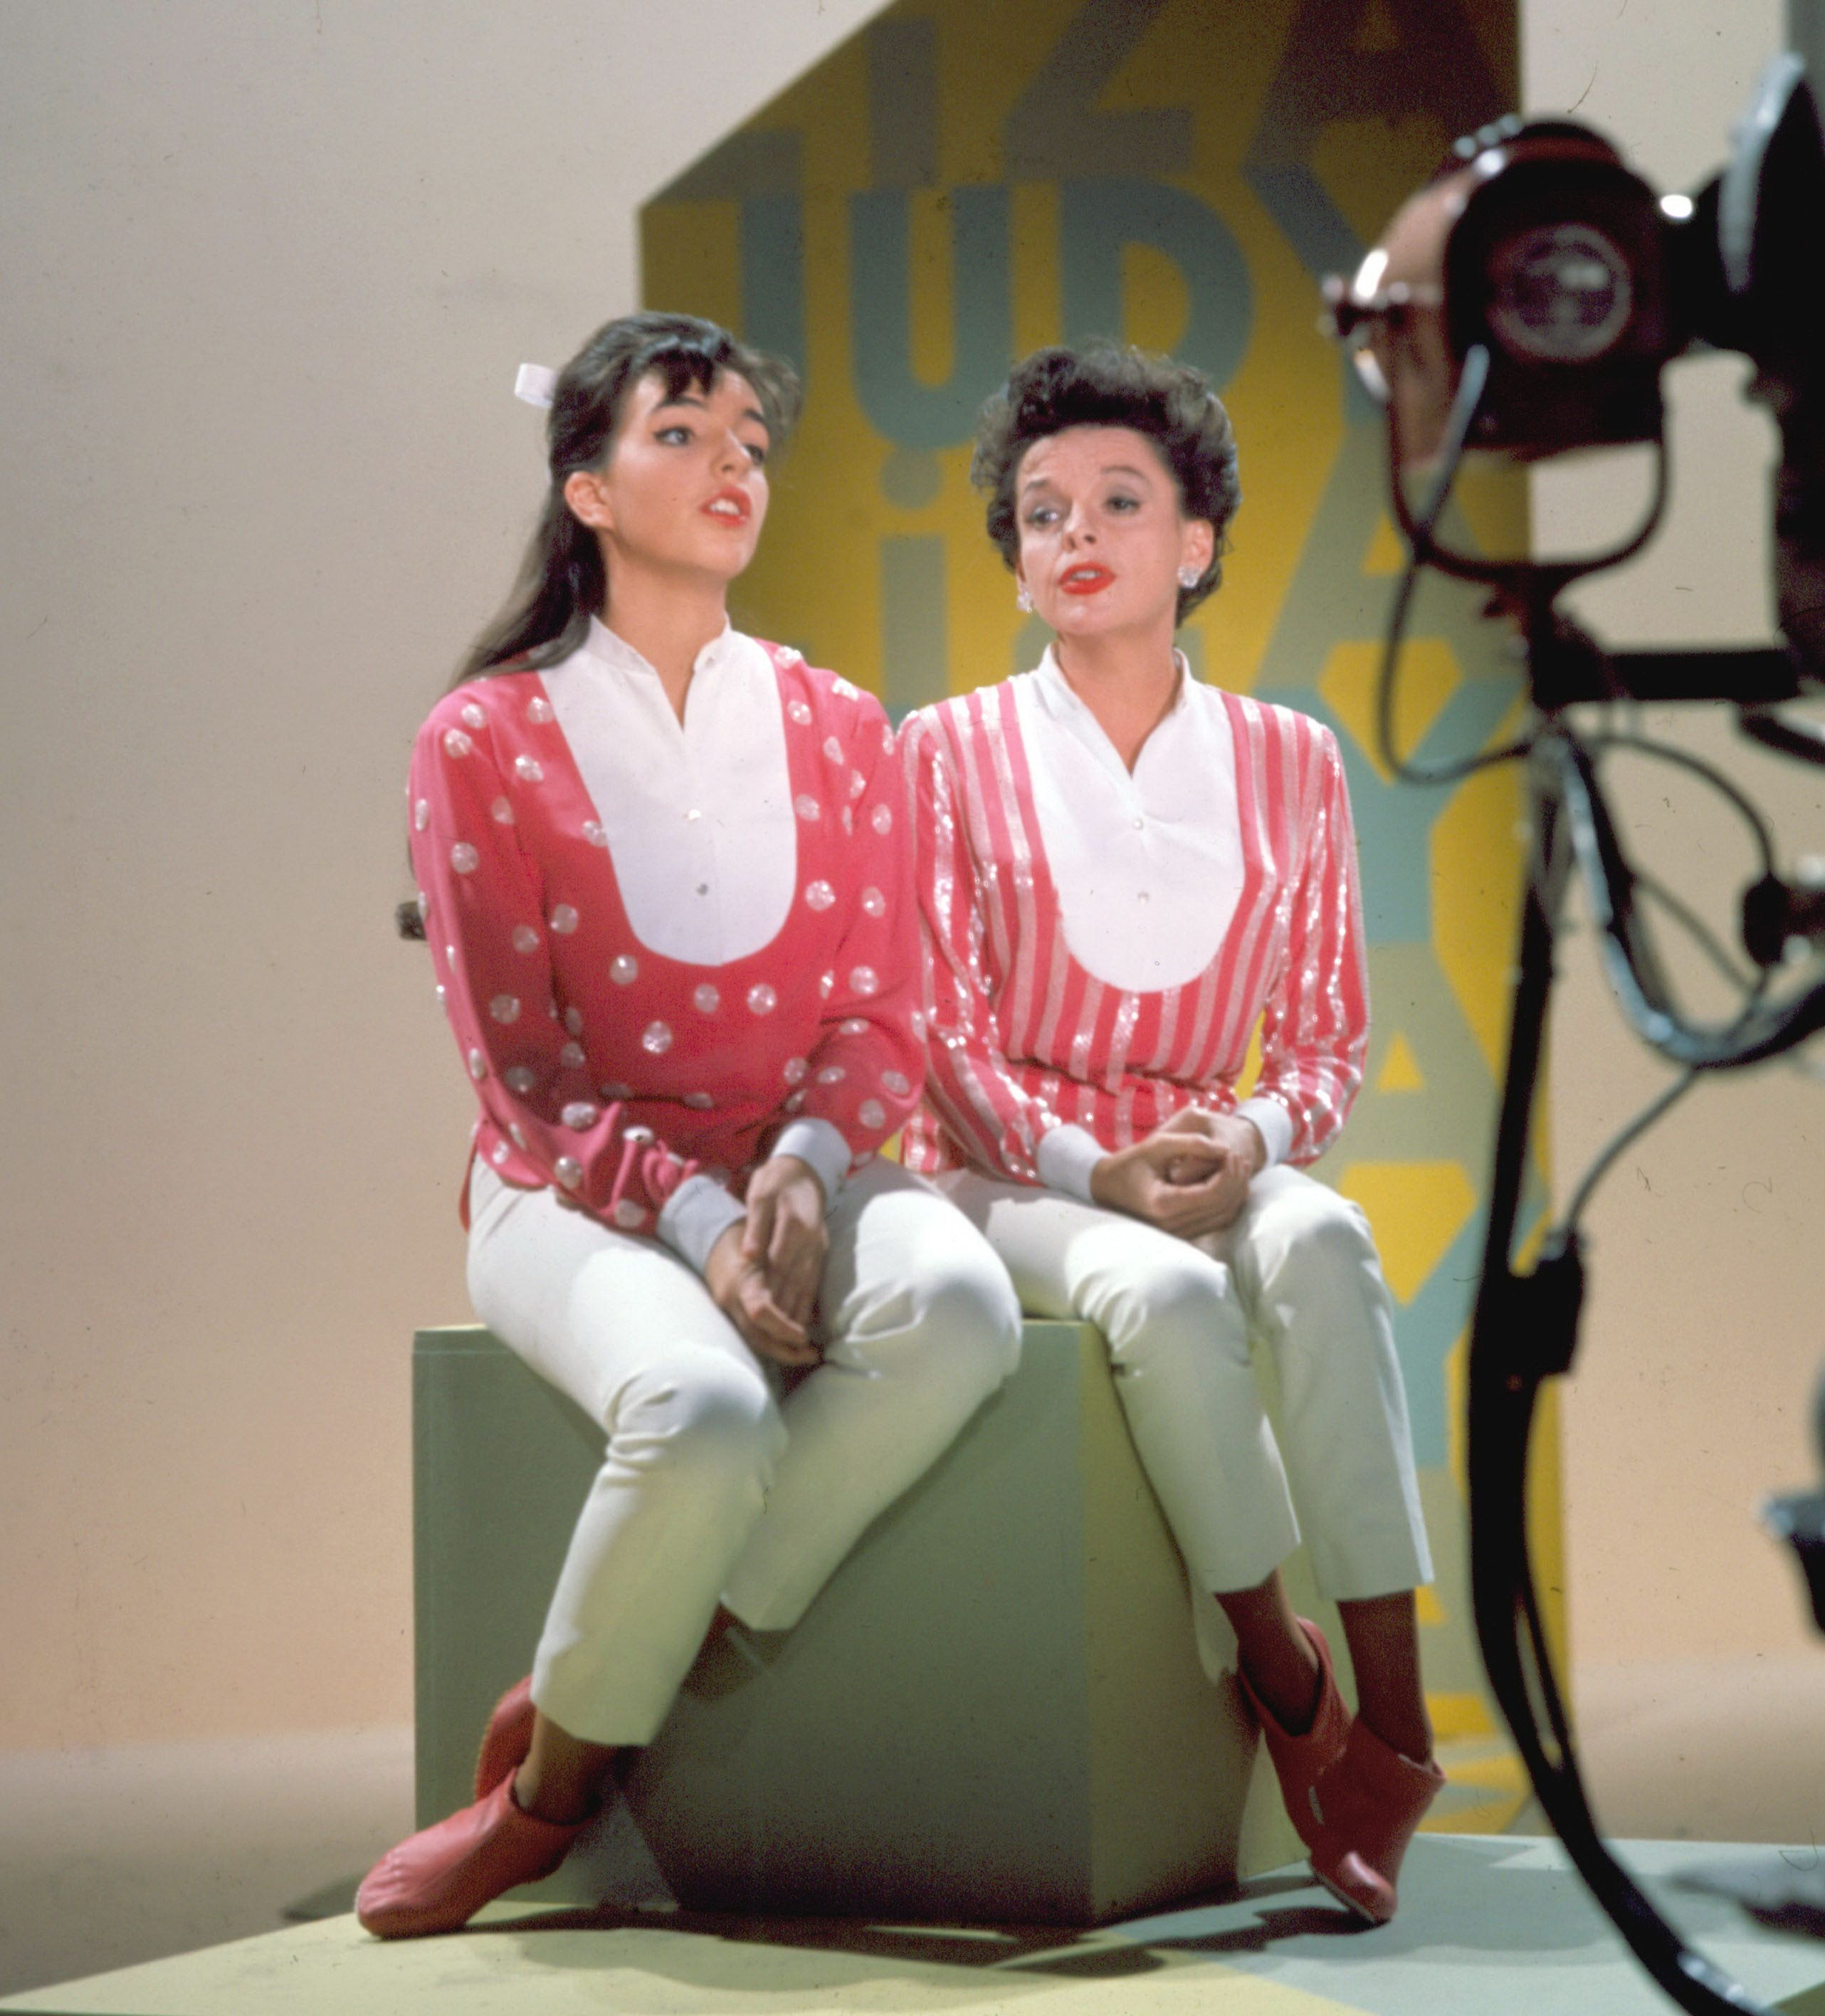 American singer and actress Judy Garland (right) (1922 - 1969) and her daughter, singer and actess Liza Minnelli sit together on a stage cube on top of a raised platform and sing a duet on the set of the CBS music variety series 'The Judy Garland Show,' CBS Television City, Los Angeles, California, July 16, 1963. Garland and Minnelli wear nearly matching outfits and sit in front of a backdrop with their names printed on it. (Photo by CBS Photo Archive/Getty Images)